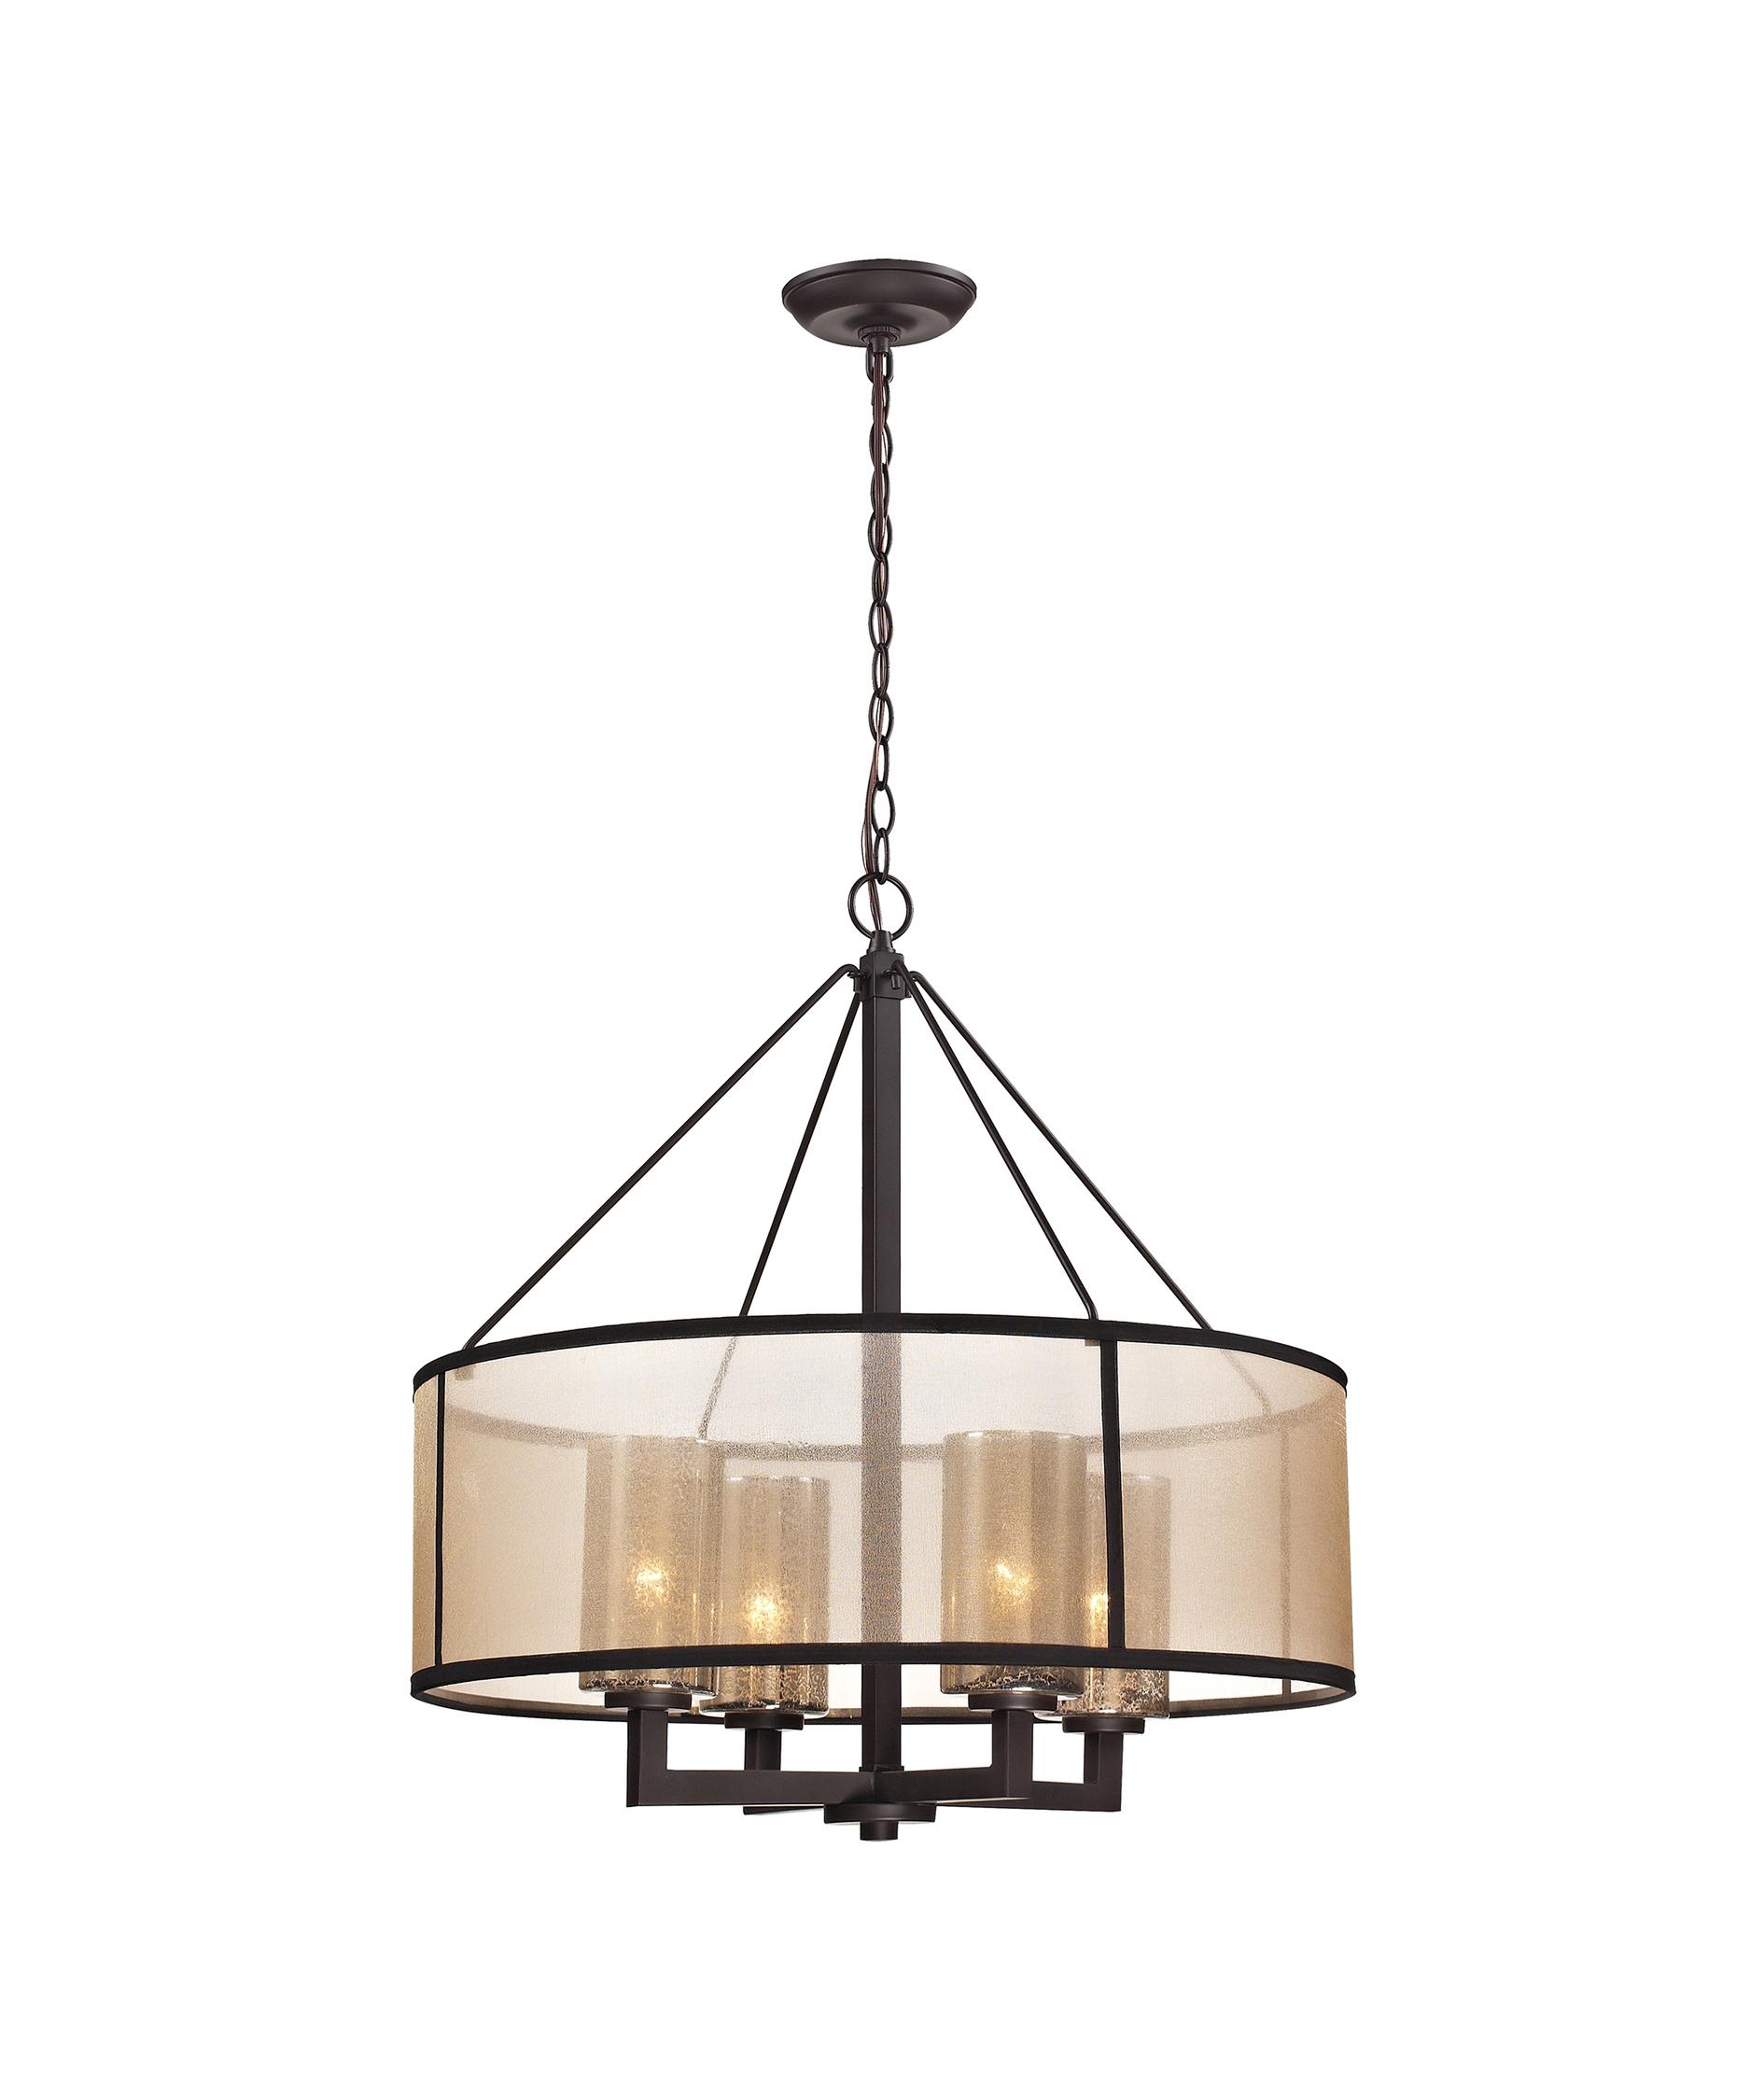 Elk Lighting 57027 4 Diffusion 24 Inch Wide 4 Light Chandelier With Regard To Bronze Modern Chandelier (Image 7 of 15)